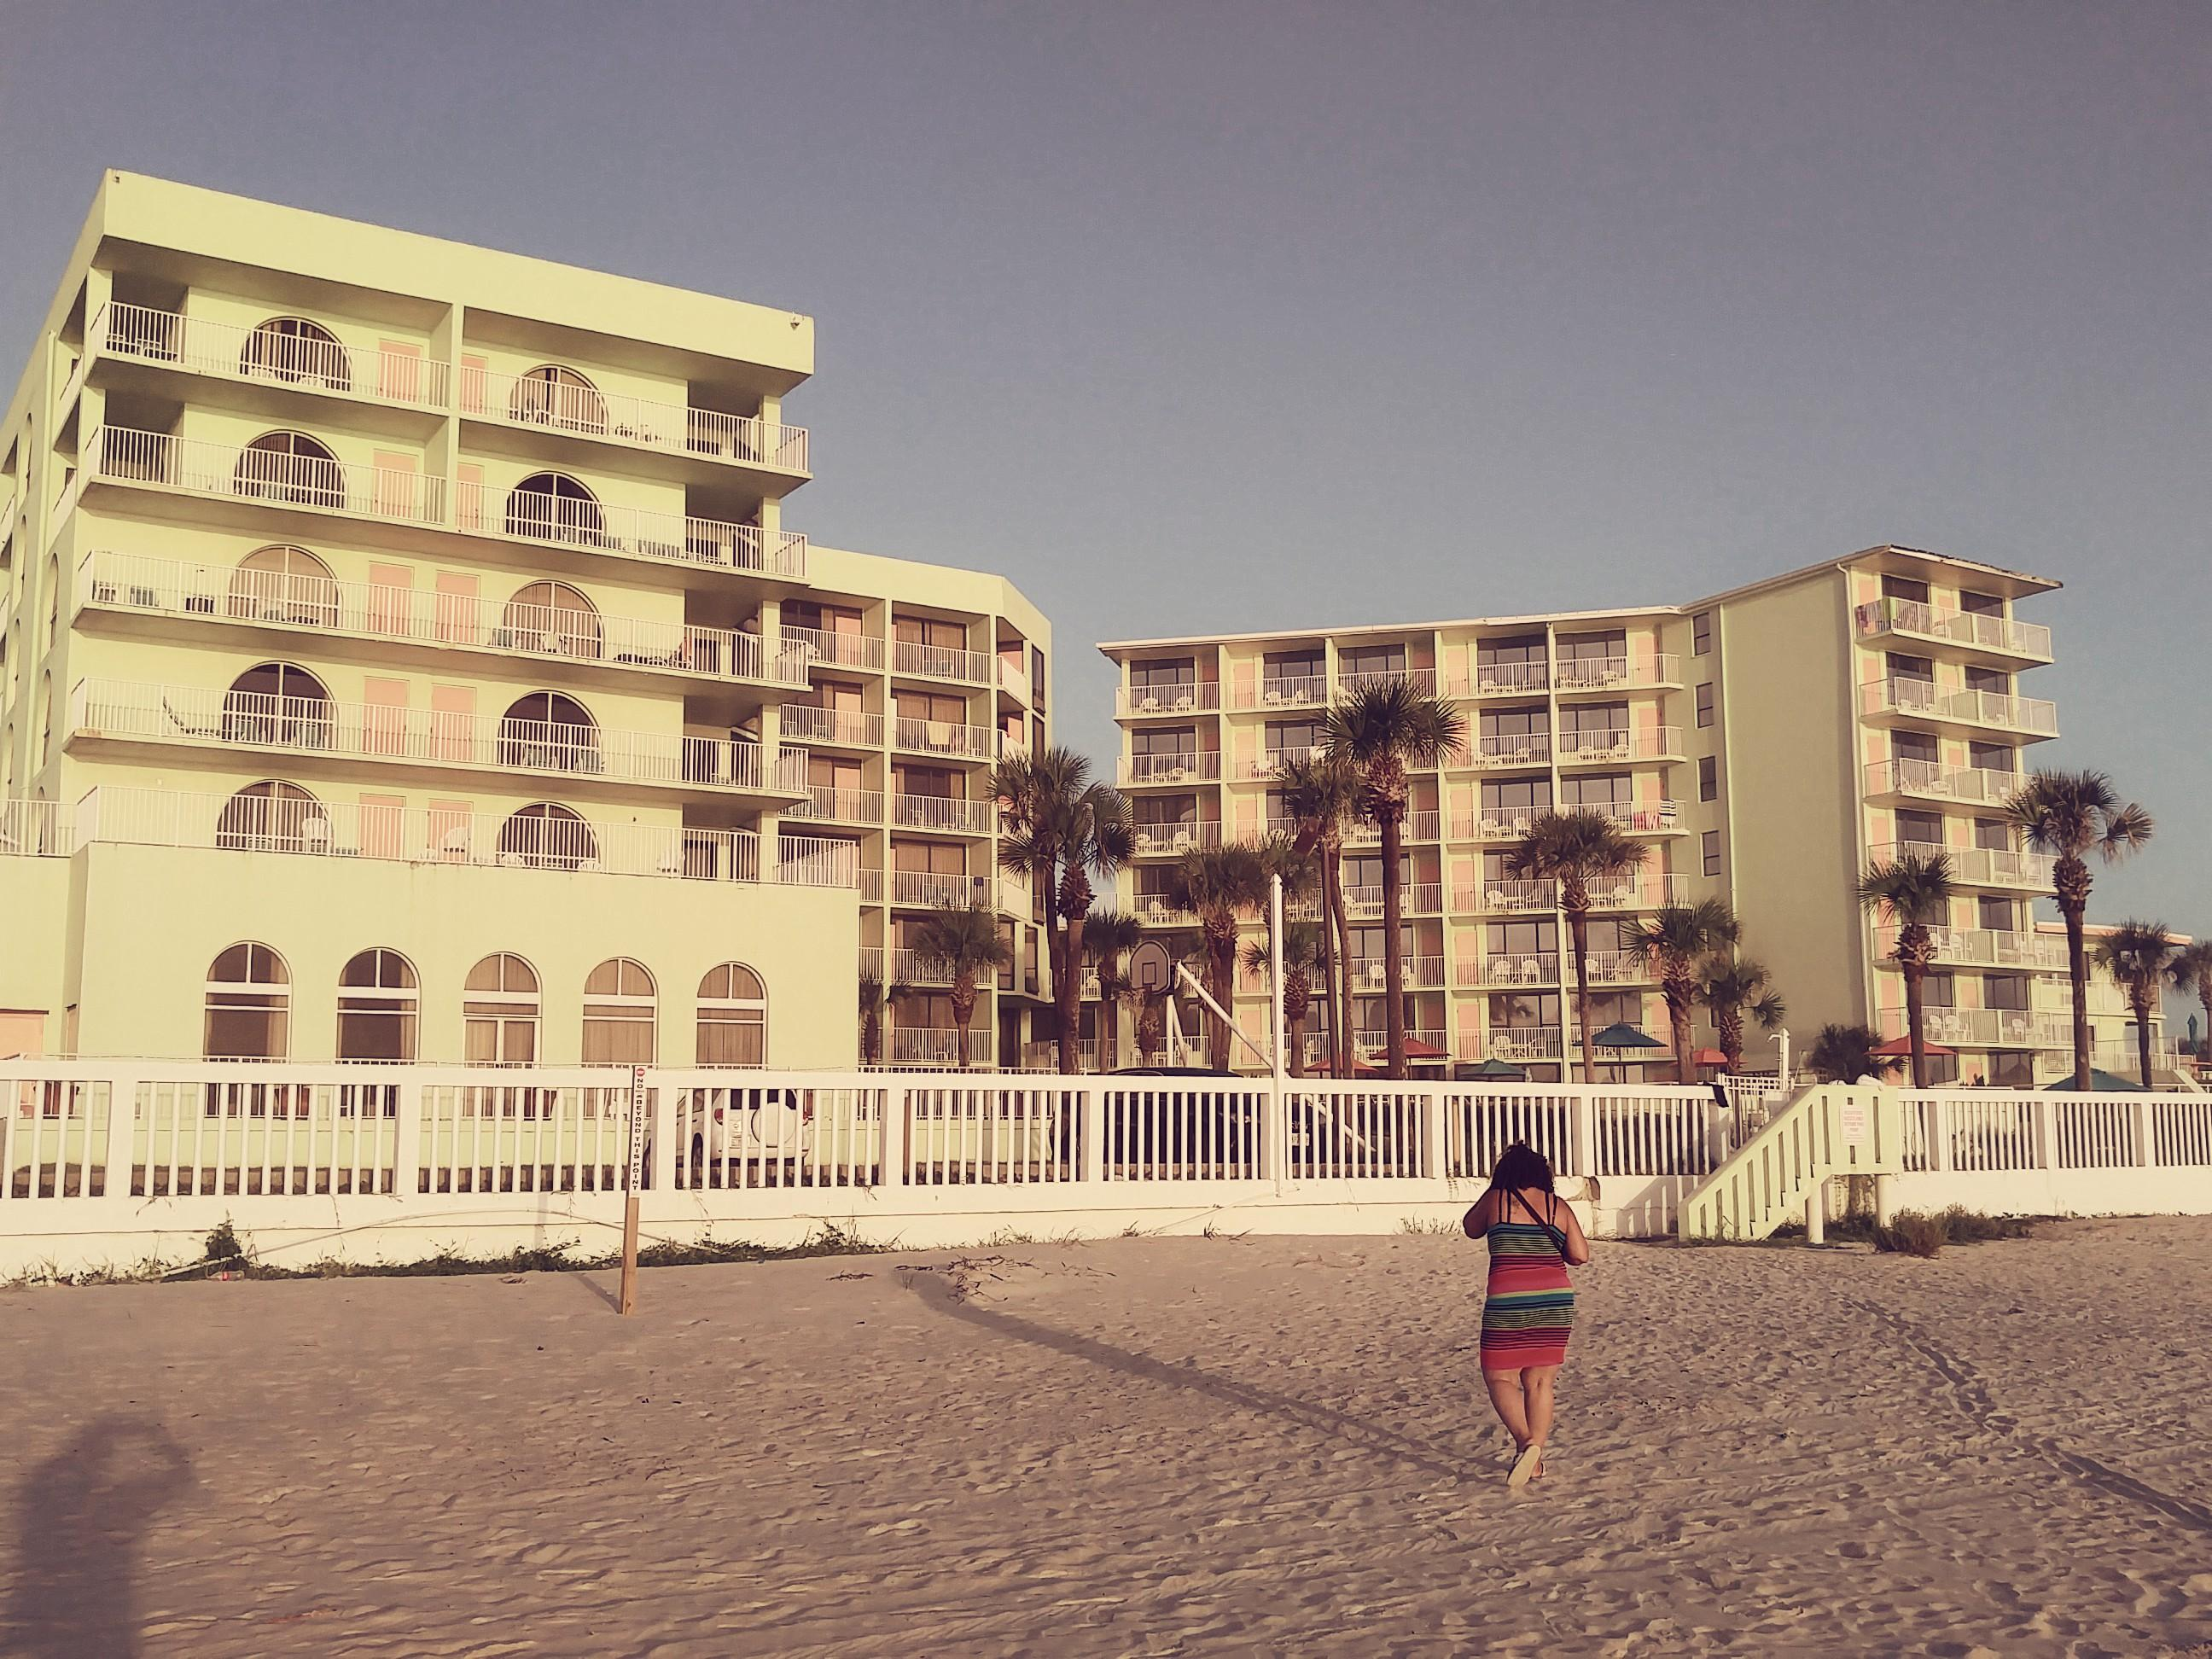 My girl and the hotel from the beach